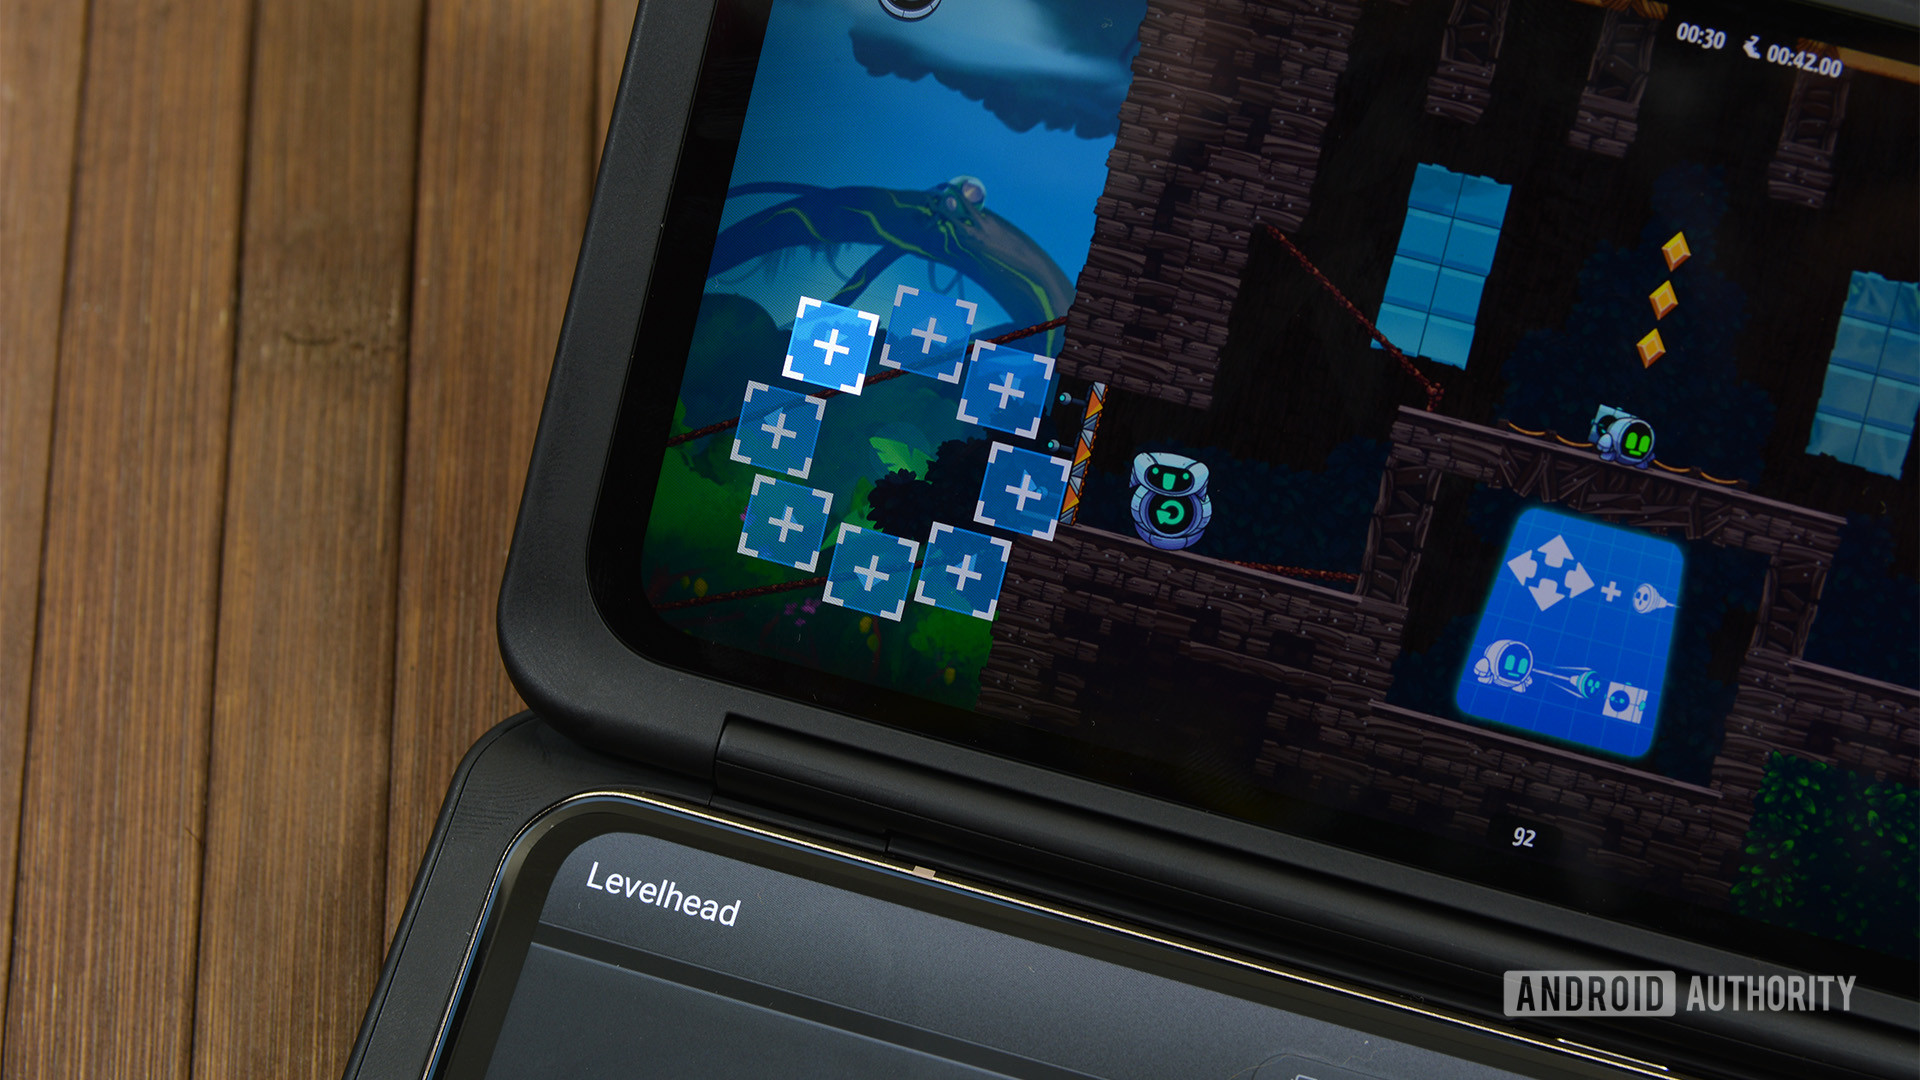 LG Game Pad mapping